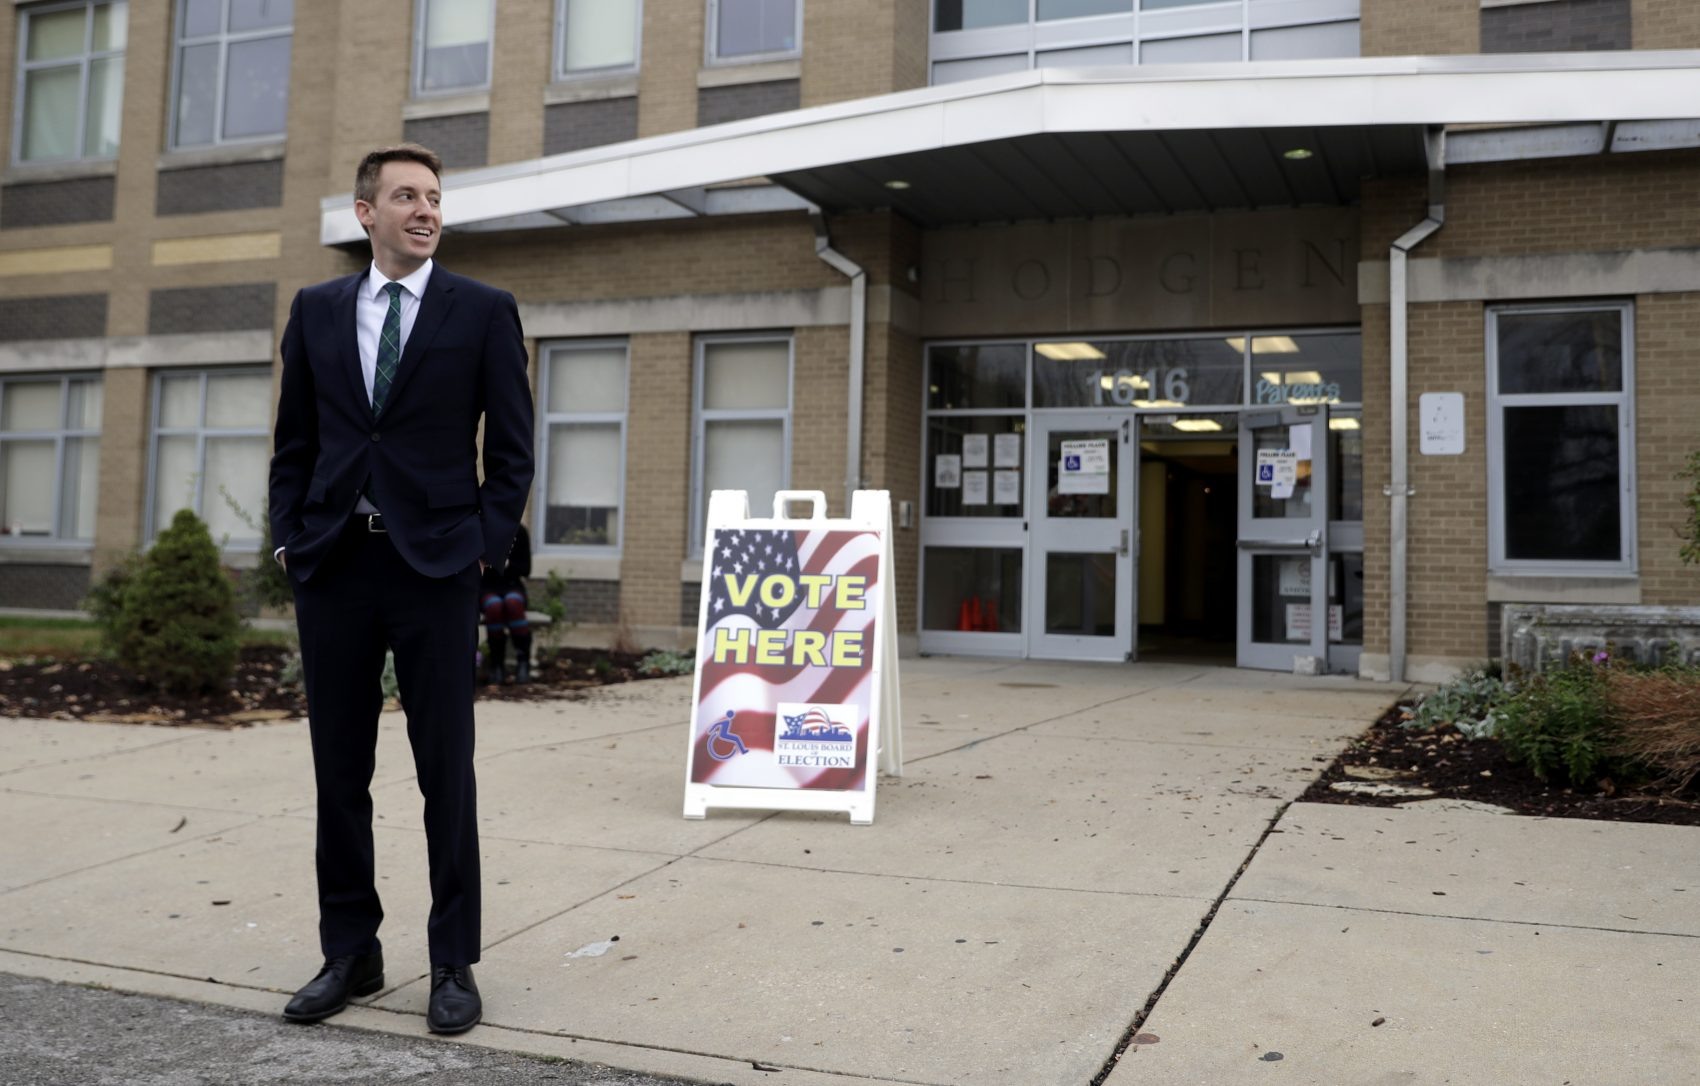 Jason Kander stands outside a polling place on, Nov. 8, 2016, in St. Louis, during his U.S. Senate campaign. (Jeff Roberson/AP)